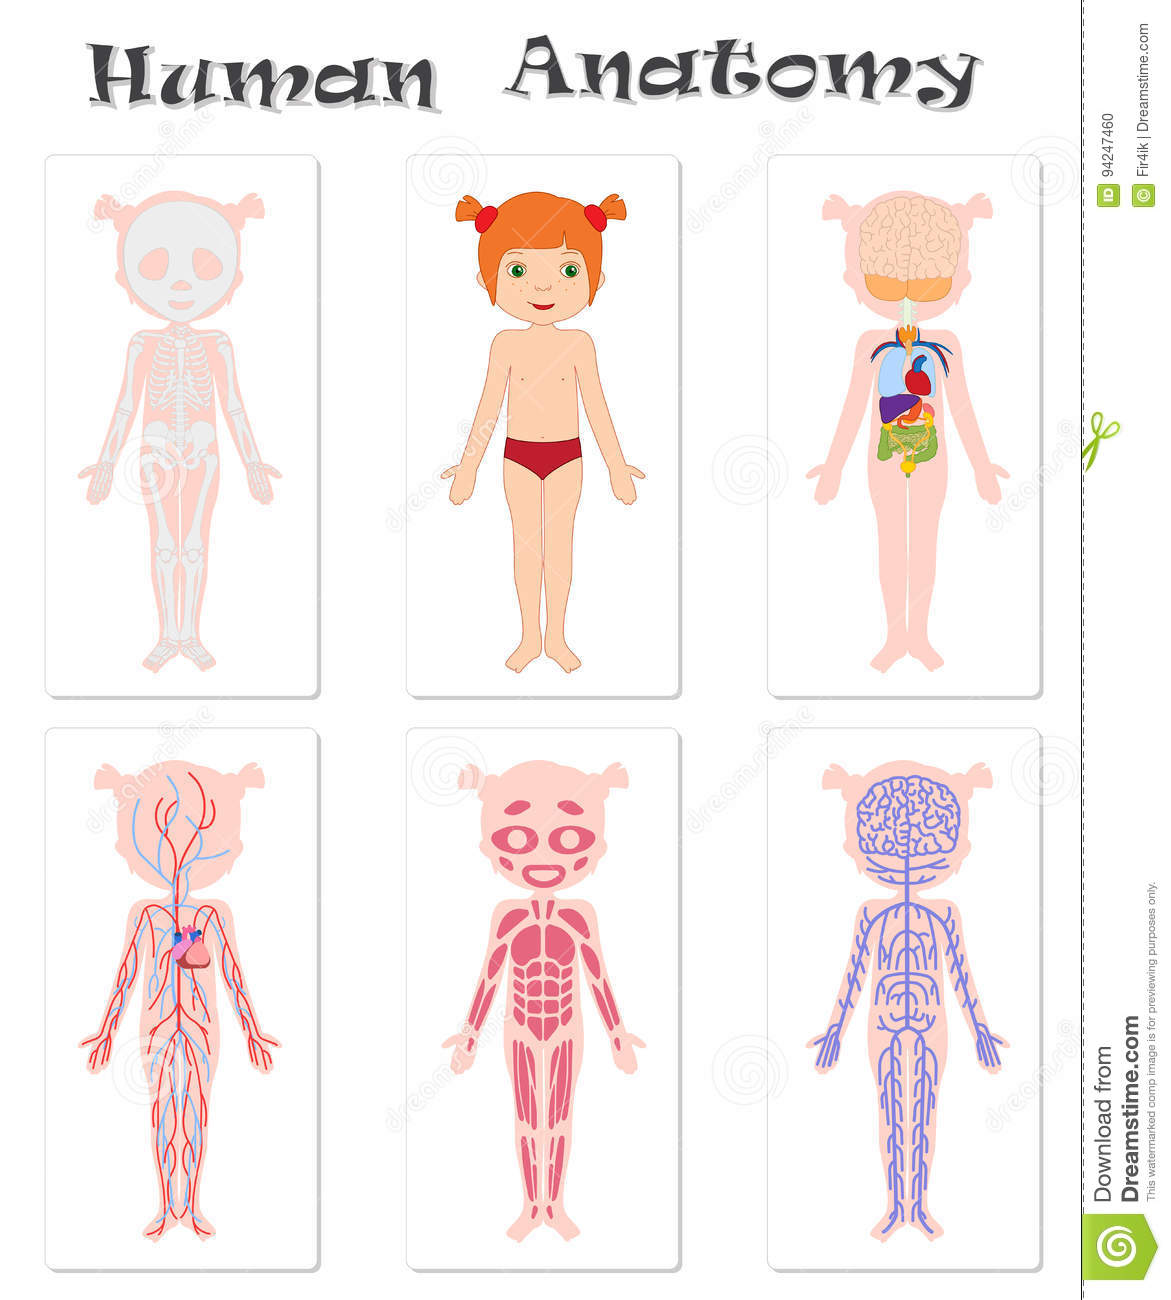 Human Anatomy For Kids Stock Vector Illustration Of Image 94247460